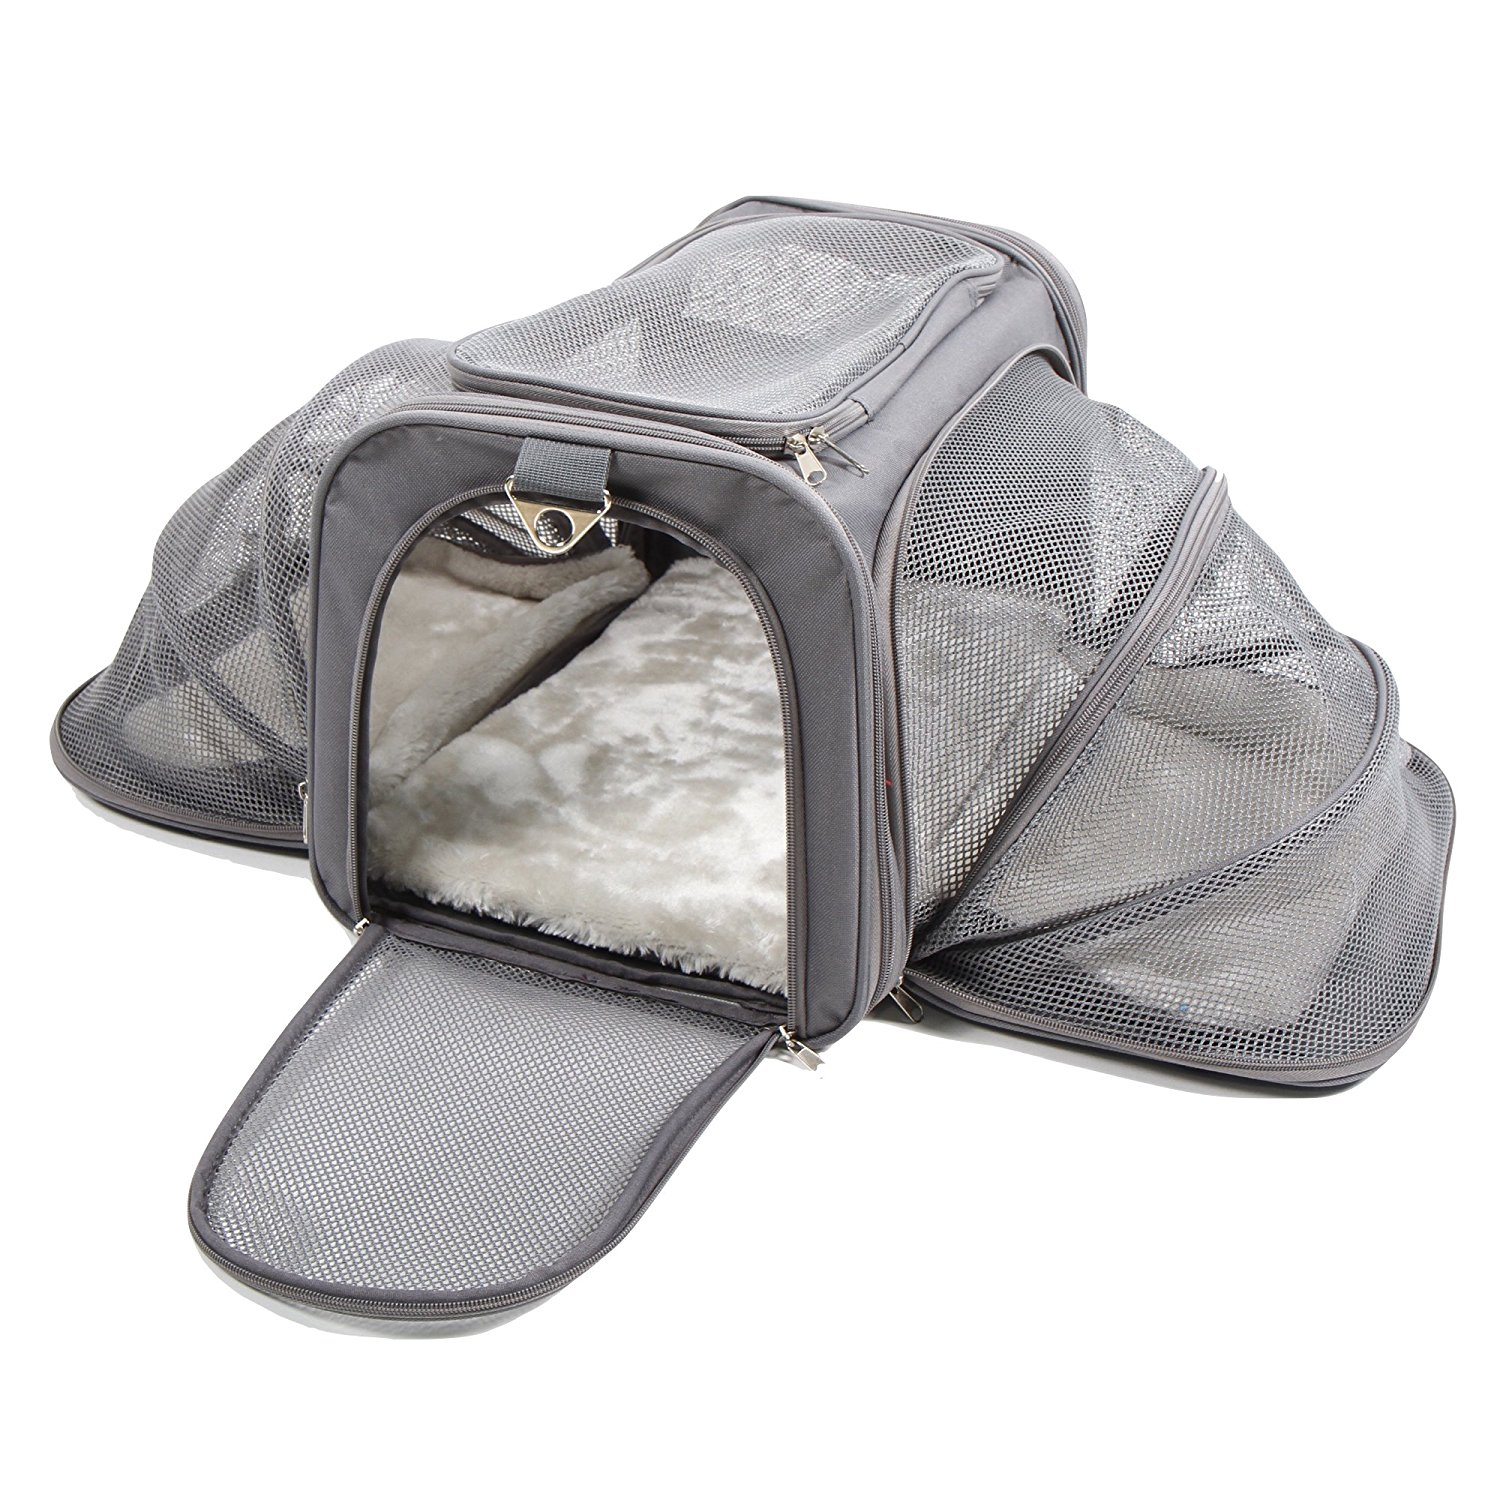 image of jet sitter soft sided pet carrier product for pet gift idea